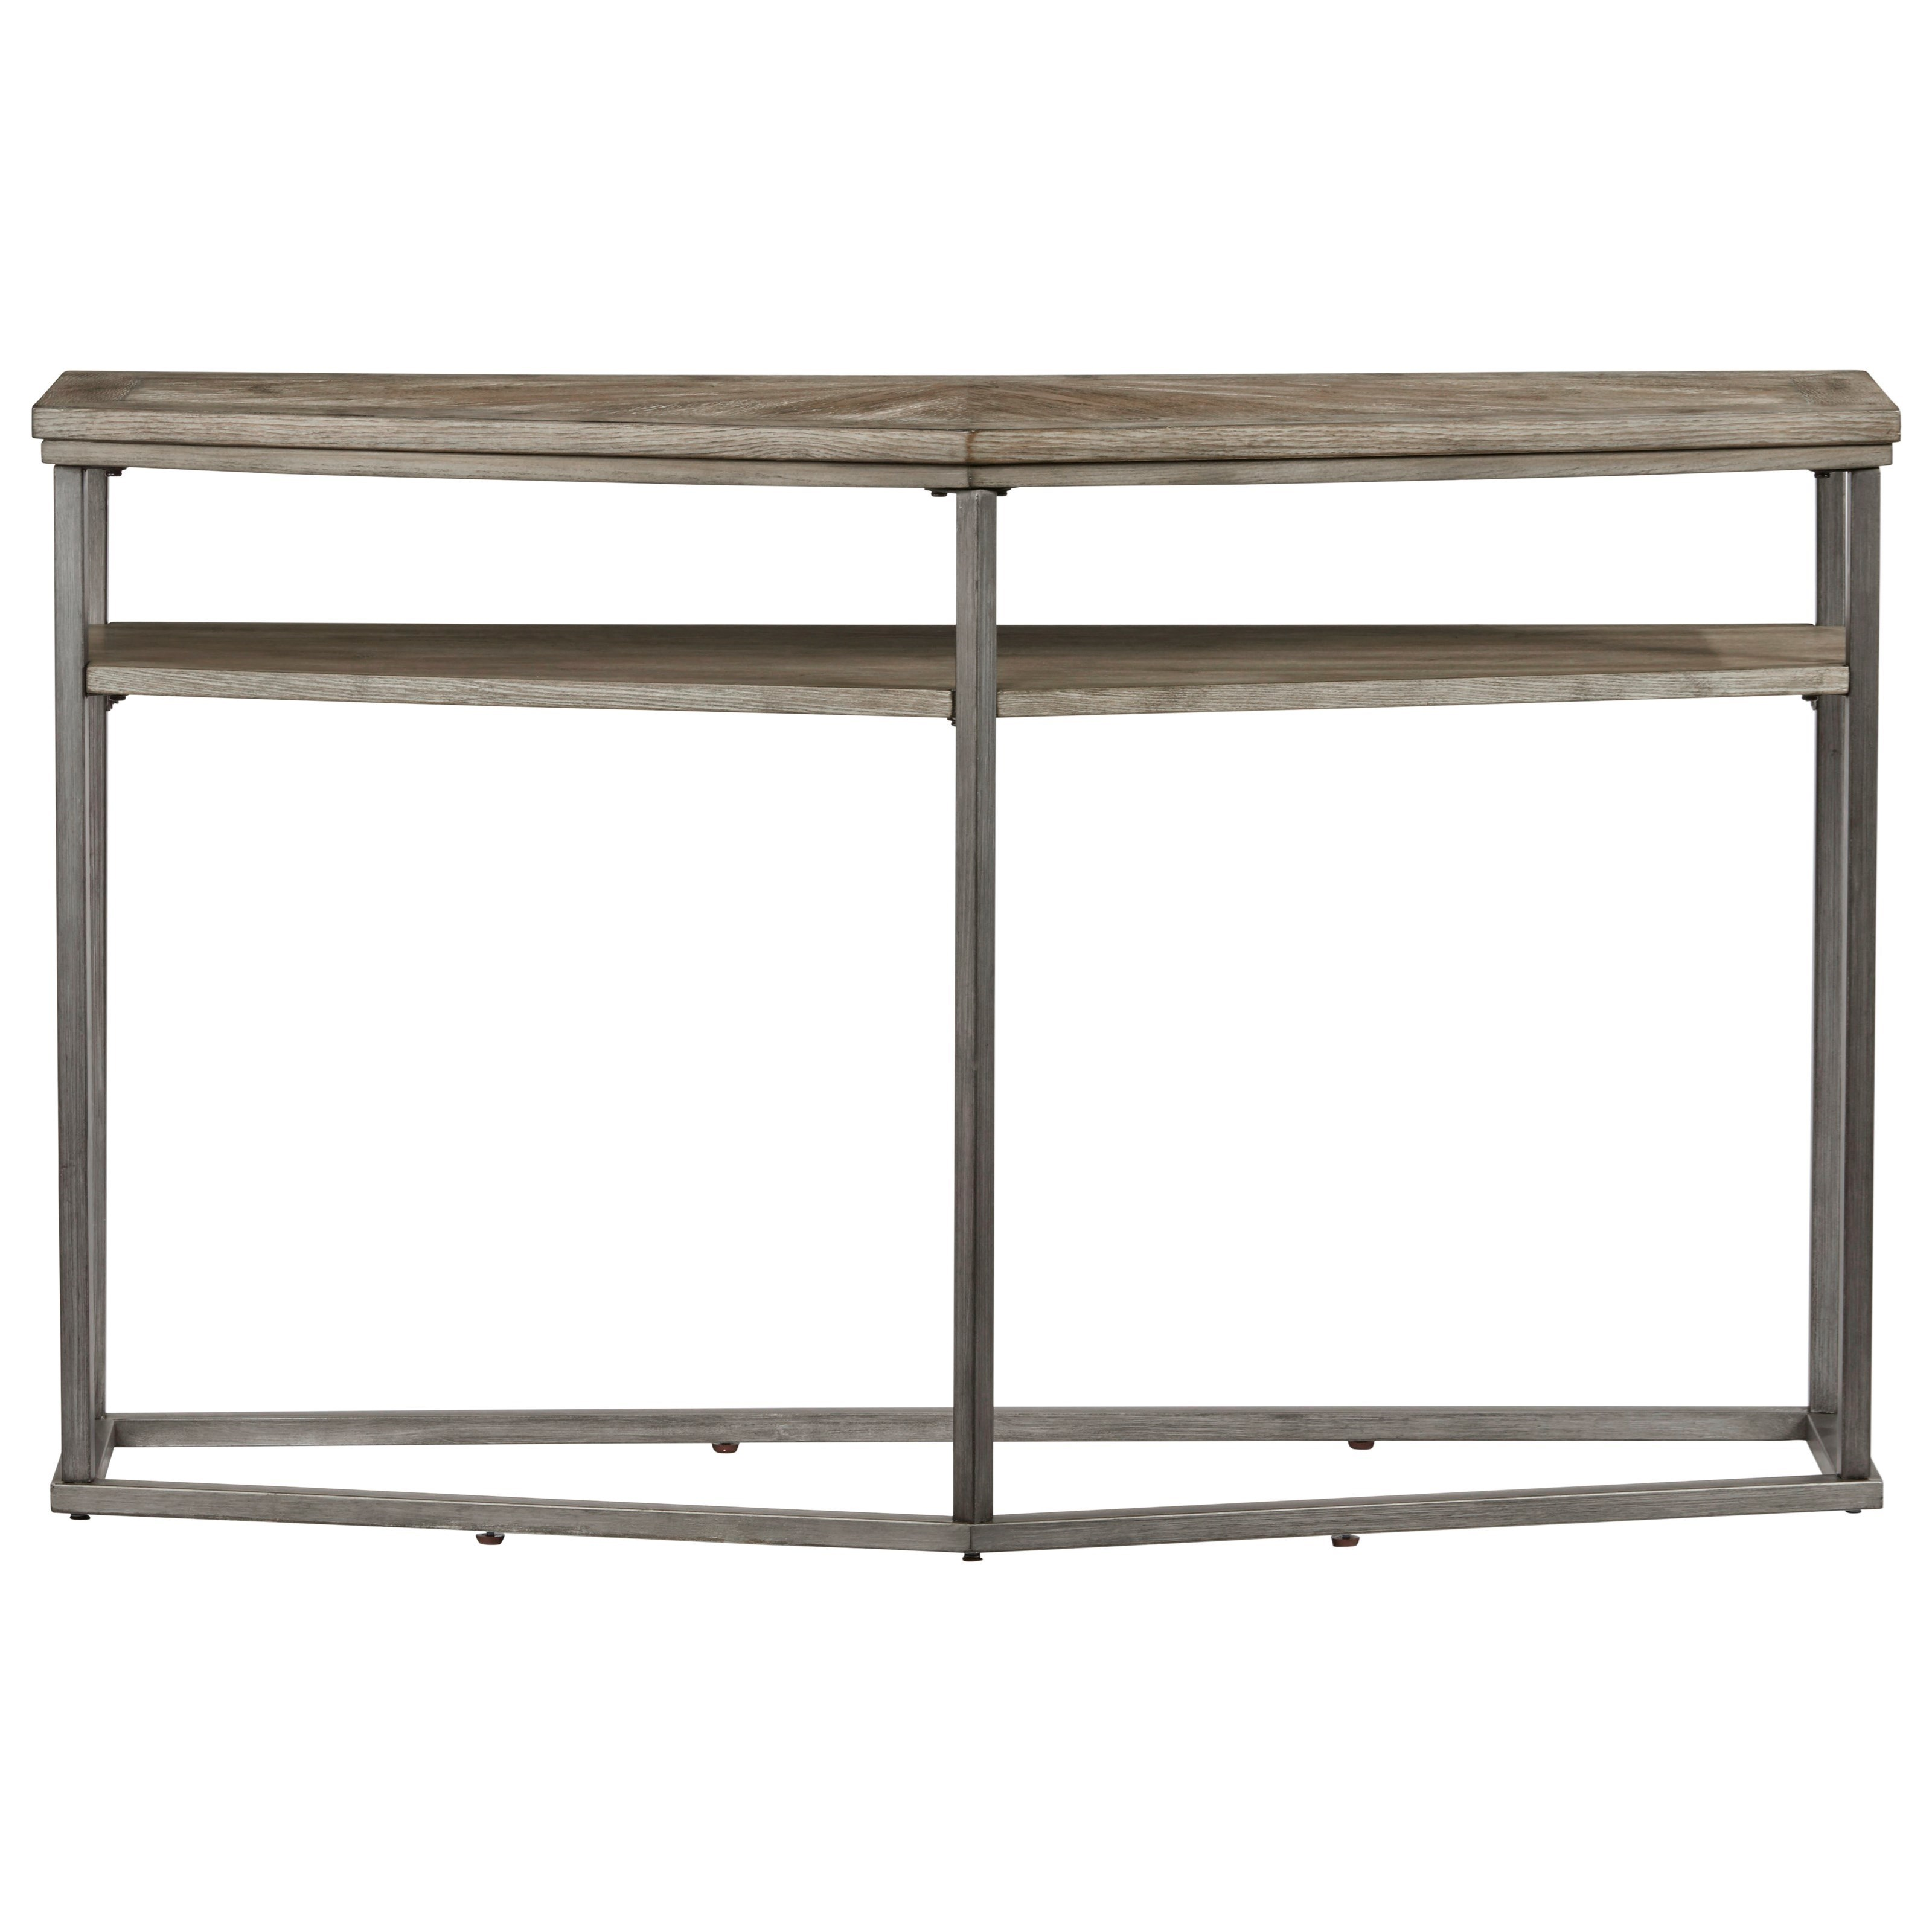 Adison Cove Sofa/Console Table by Progressive Furniture at Simply Home by Lindy's